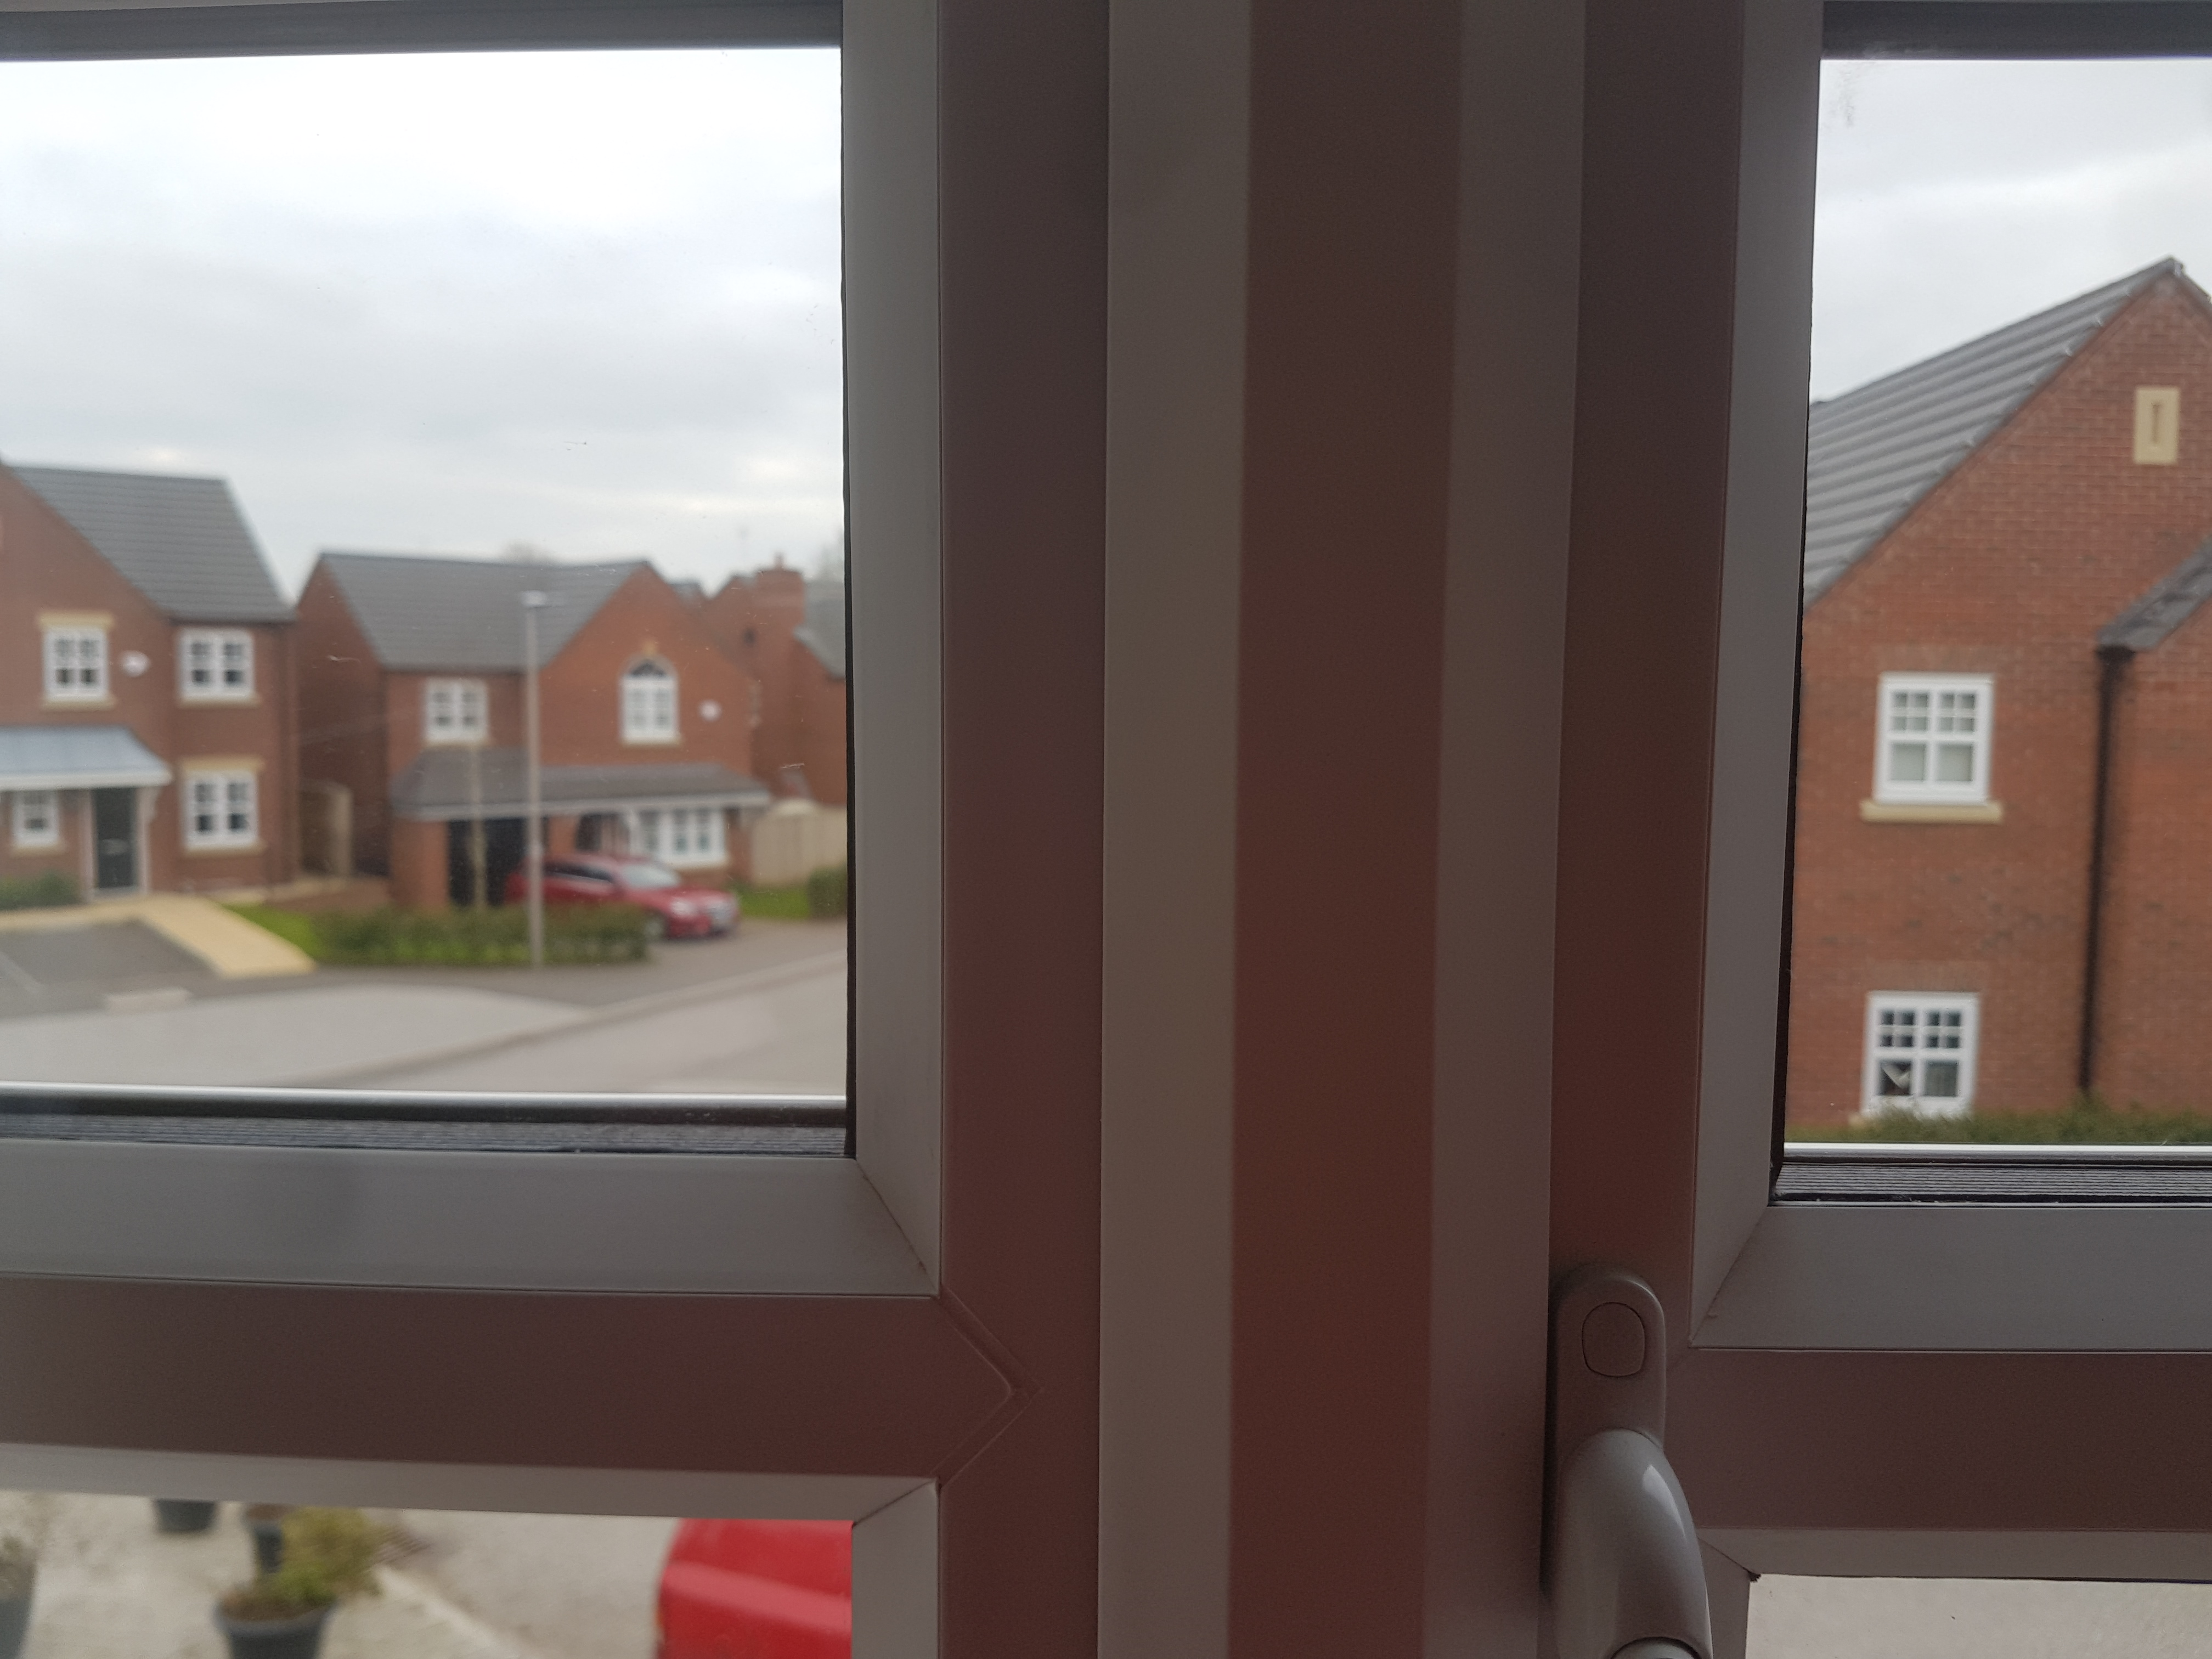 Scratch And Dent Bedroom Furniture Upvc Plastic Window Frame Screw Hole Repairs Namco Refurbs